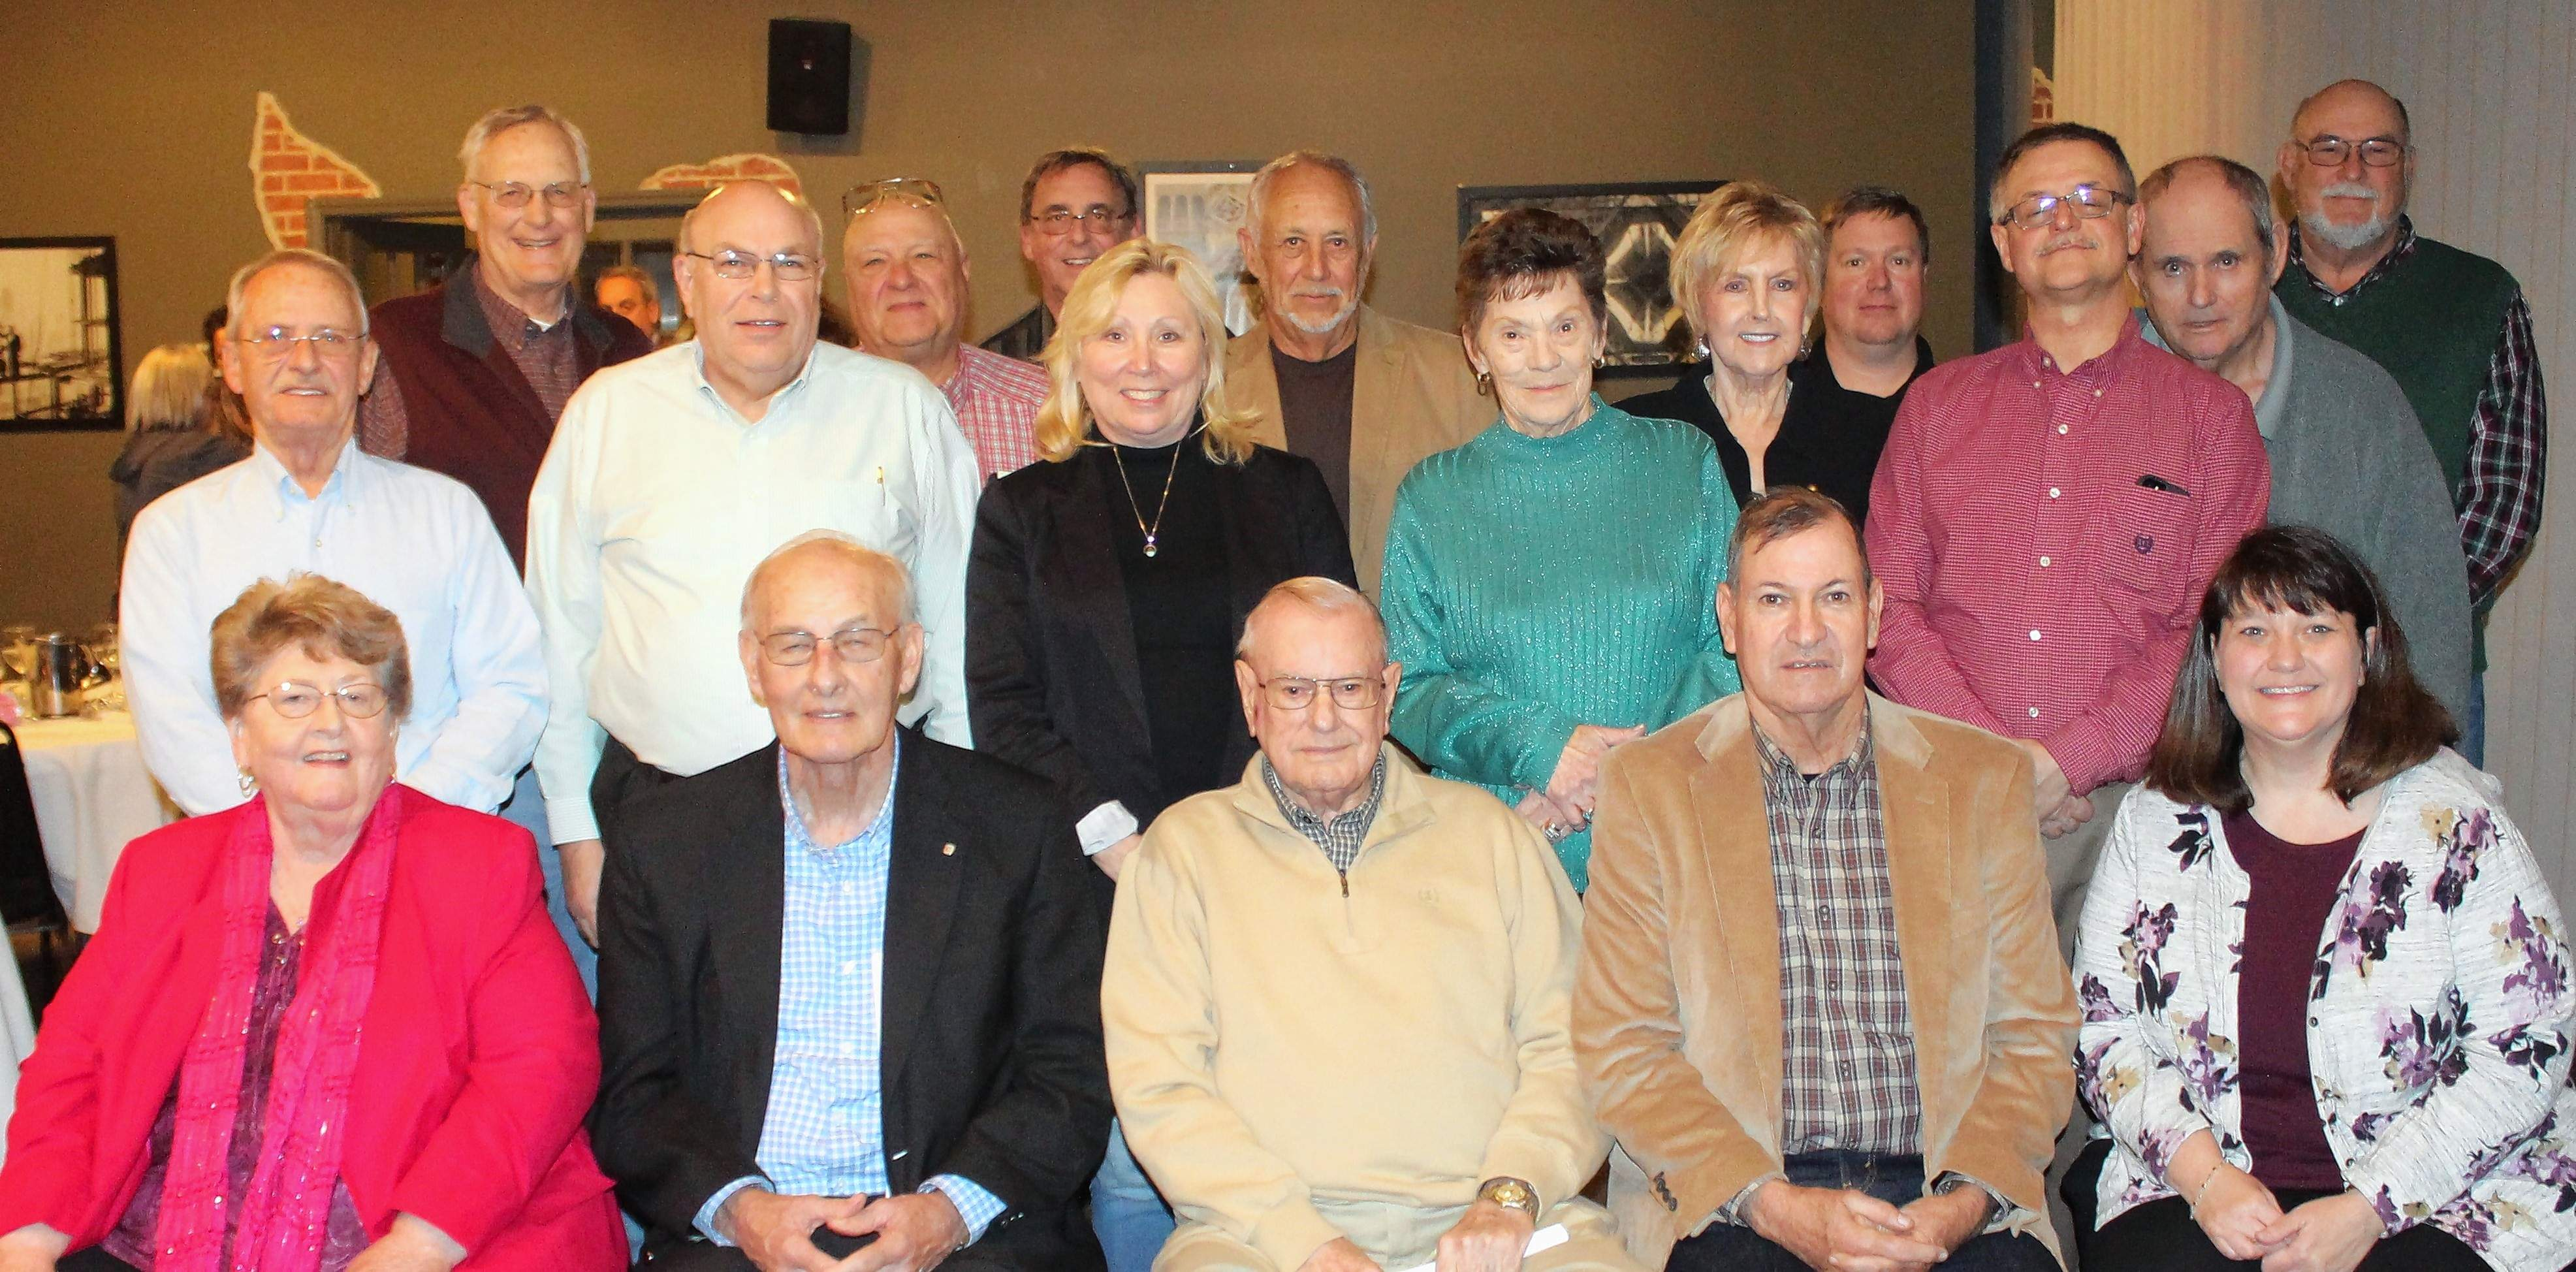 Board members of the Southeastern Illinois Regional Planning and Development Commission celebrate the group's 50th year in service.